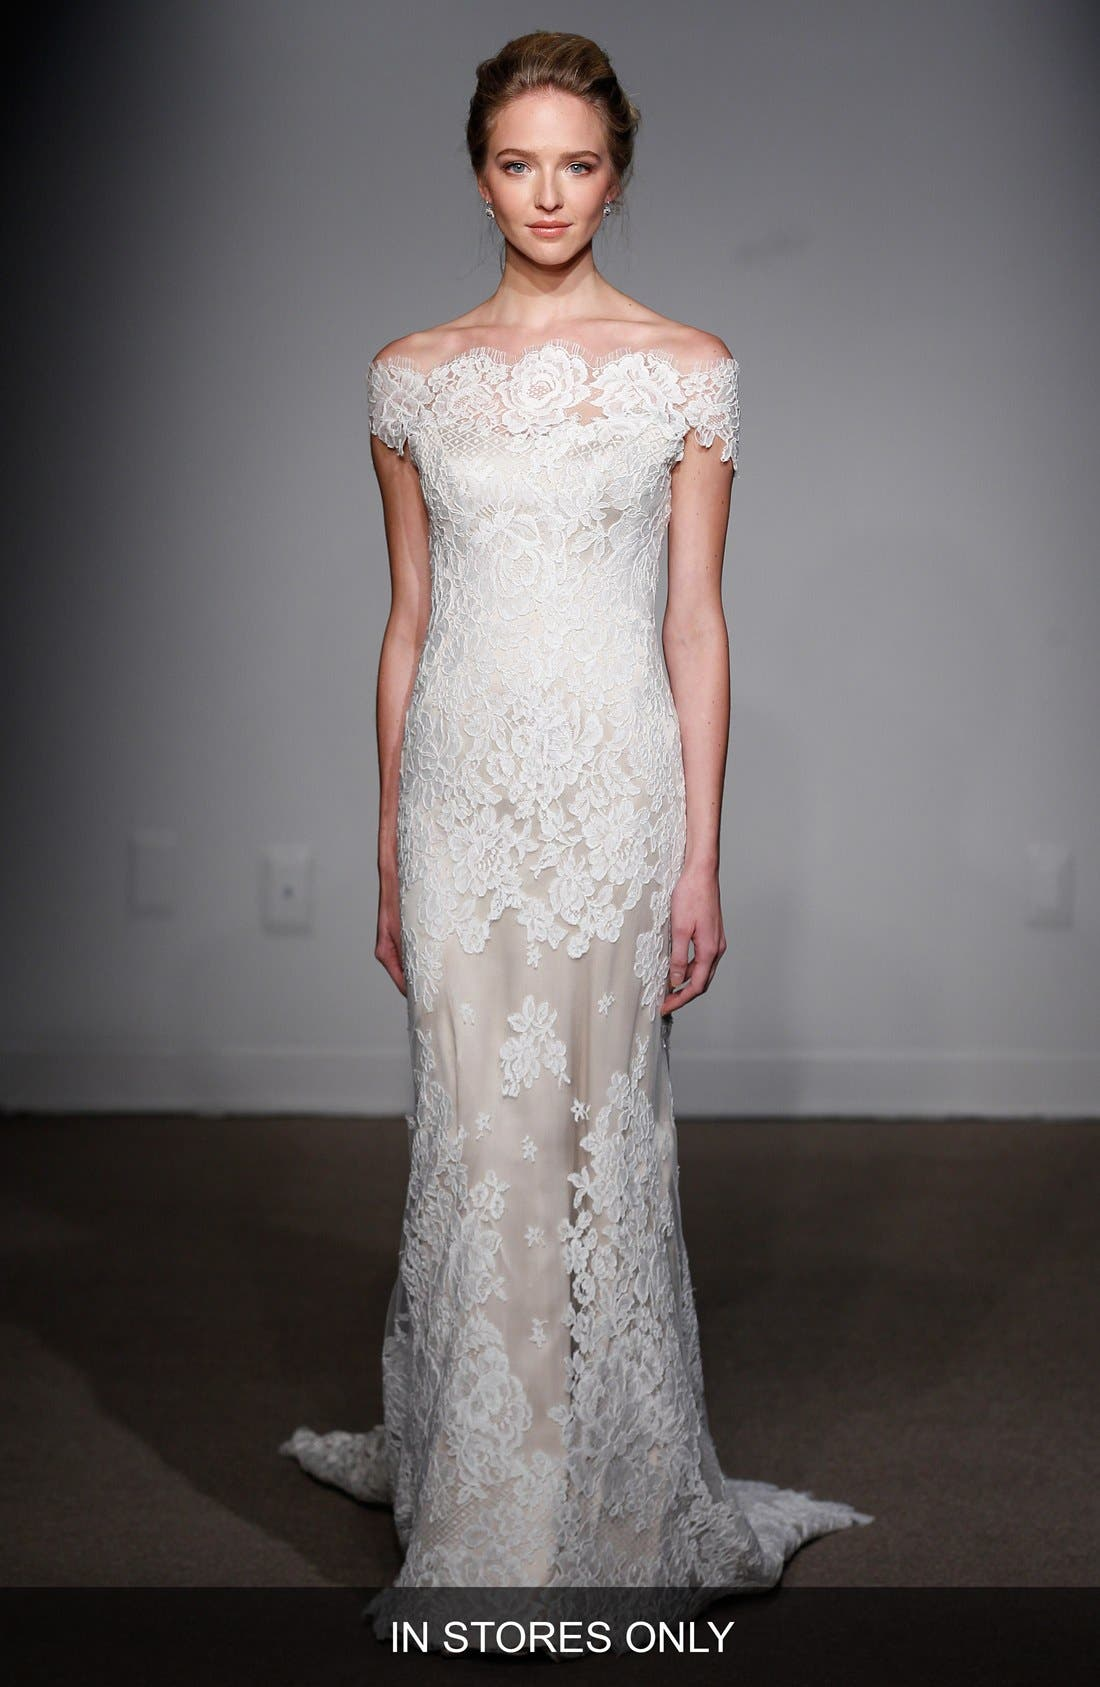 ANNA MAIER COUTURE 'Gabrielle' Off-the-Shoulder Corded Lace Gown